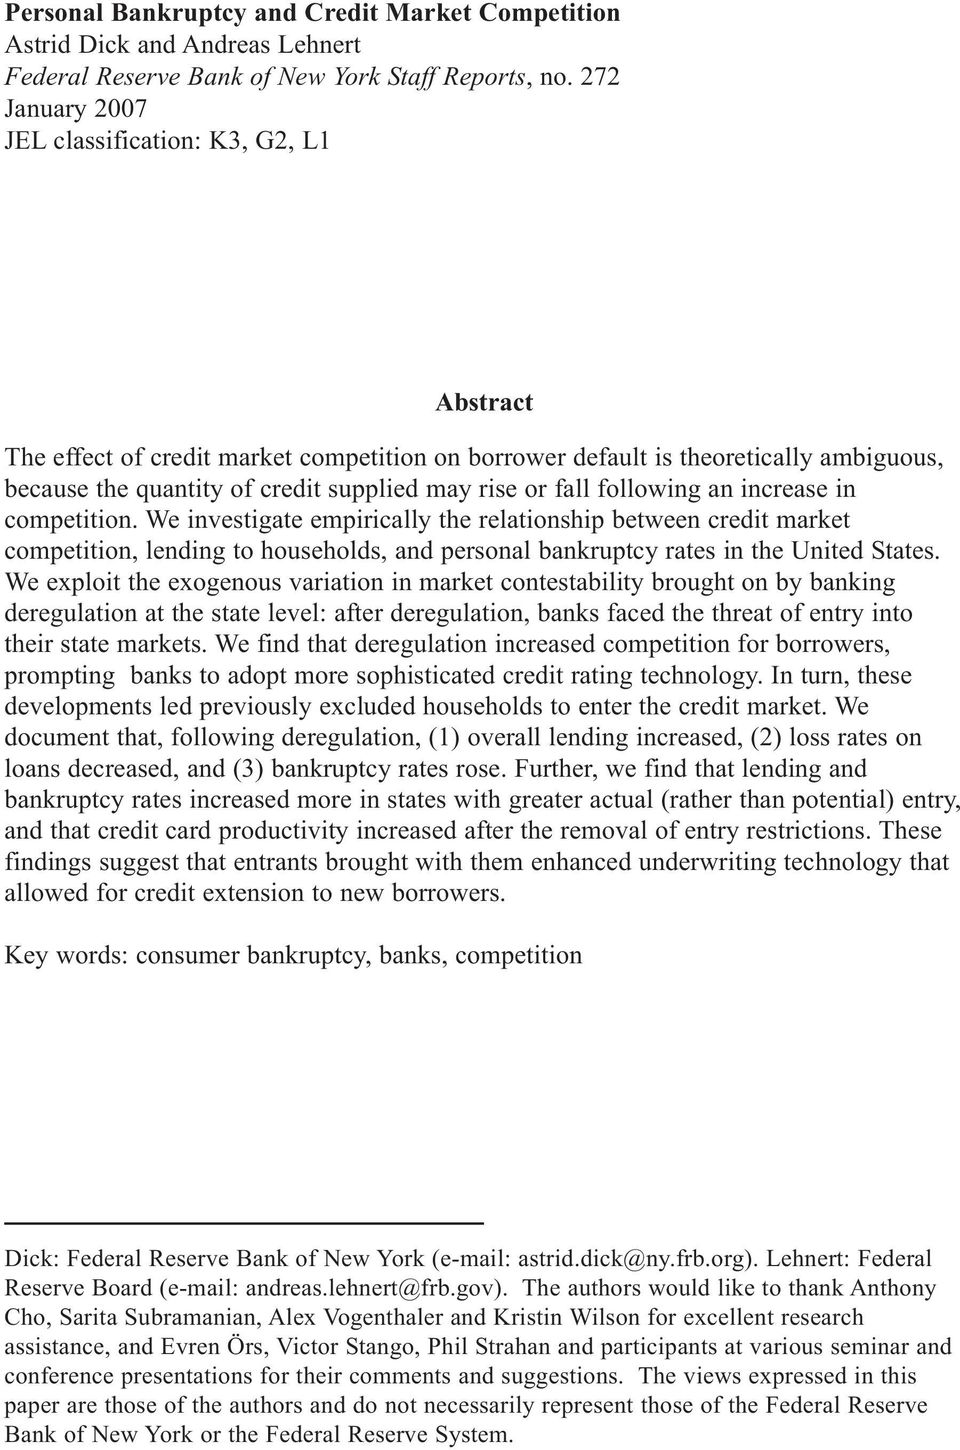 fall following an increase in competition. We investigate empirically the relationship between credit market competition, lending to households, and personal bankruptcy rates in the United States.